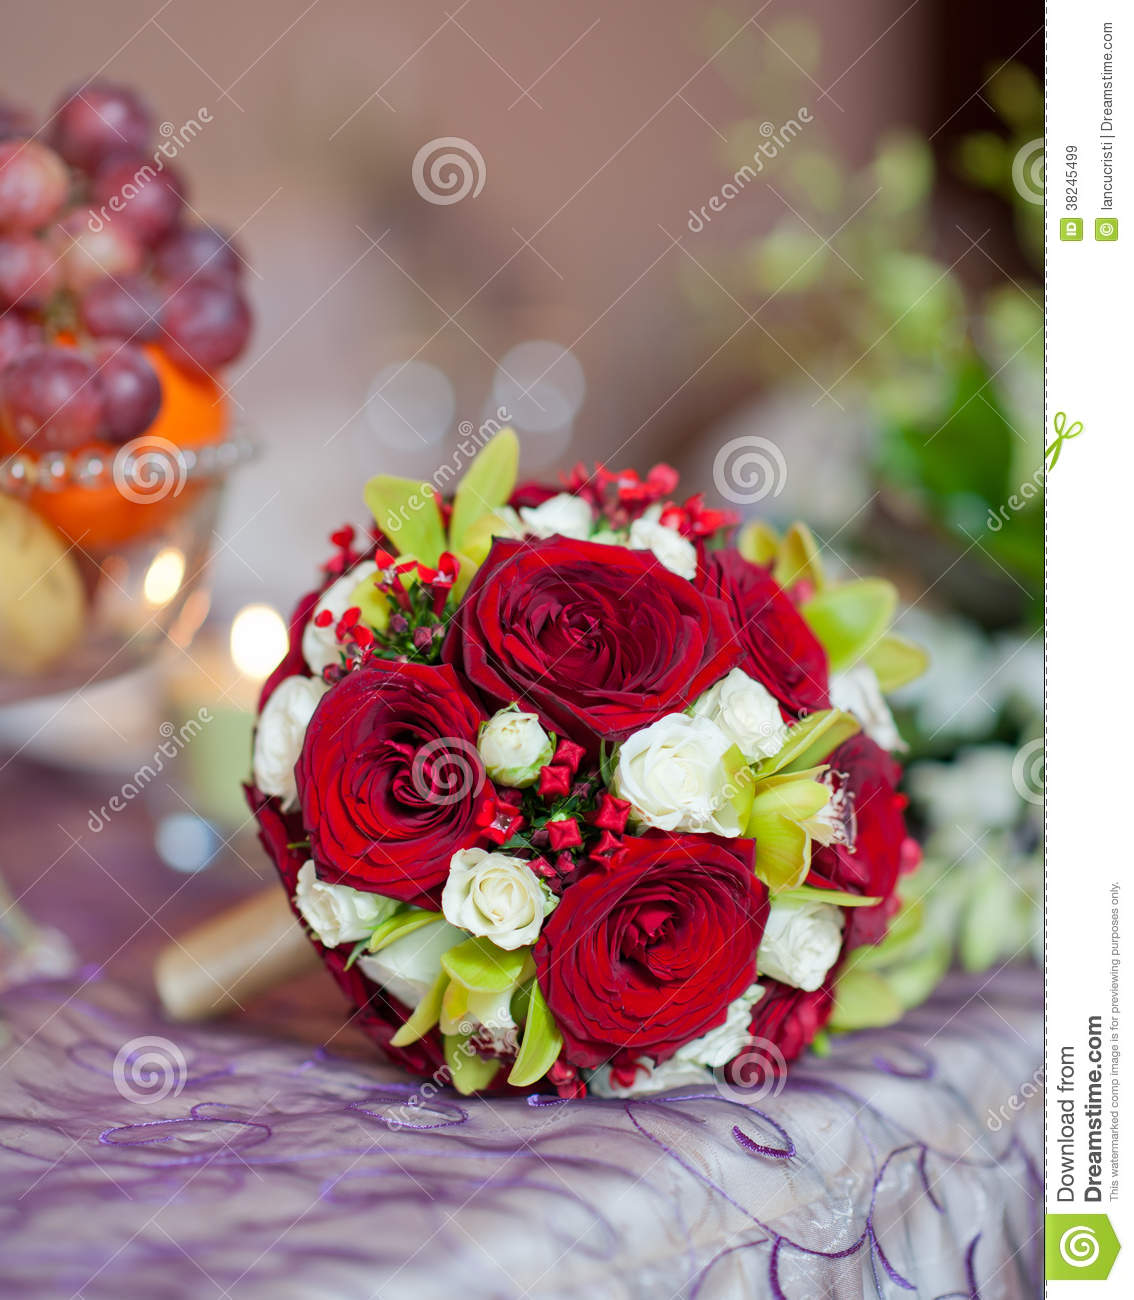 Beautiful bouquet of rose flowers on table wedding bouquet of red royalty free stock photo izmirmasajfo